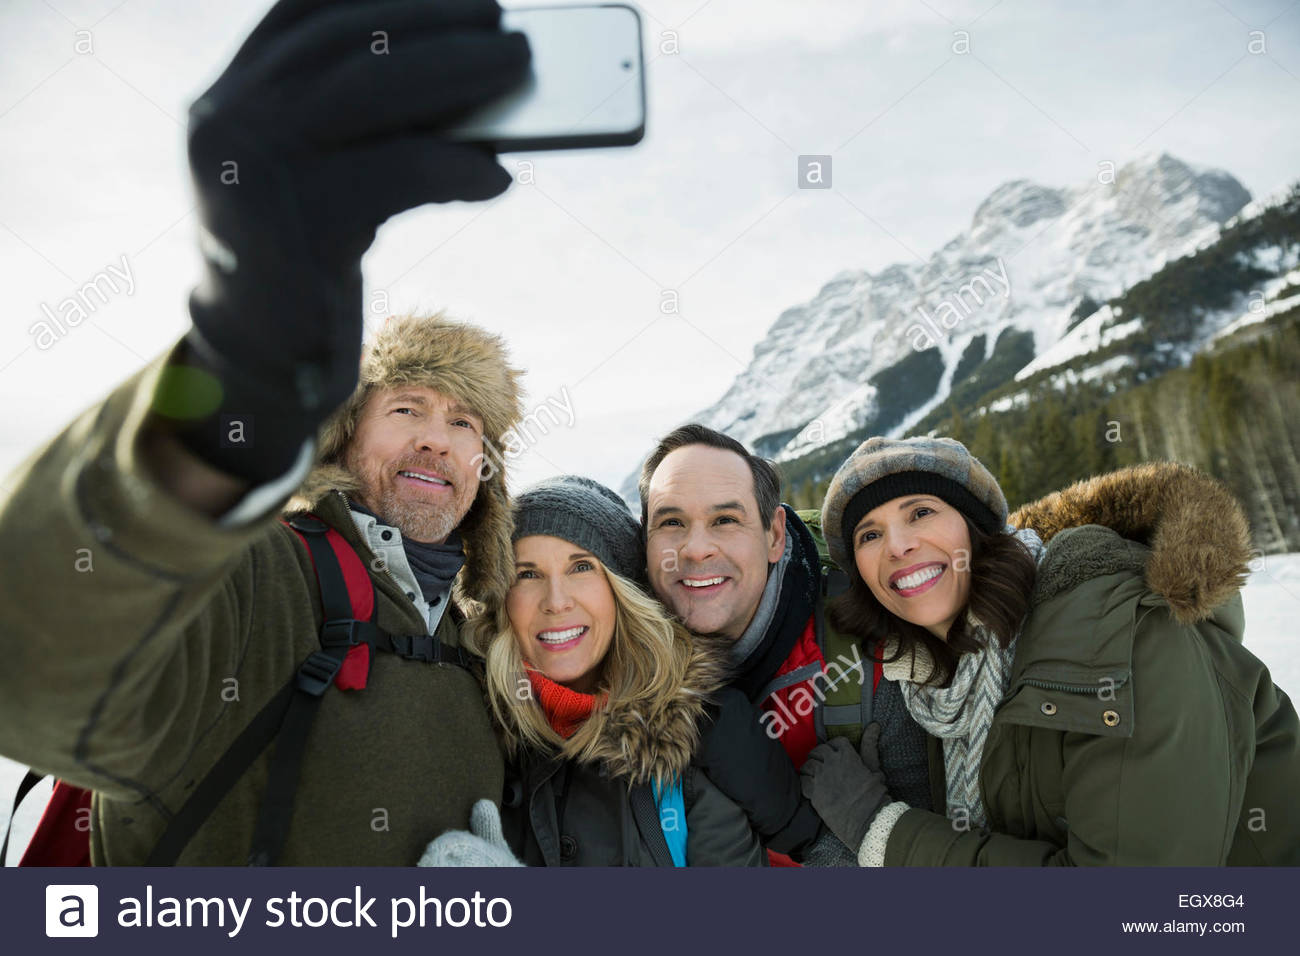 Couples taking selfie below snowy mountains - Stock Image